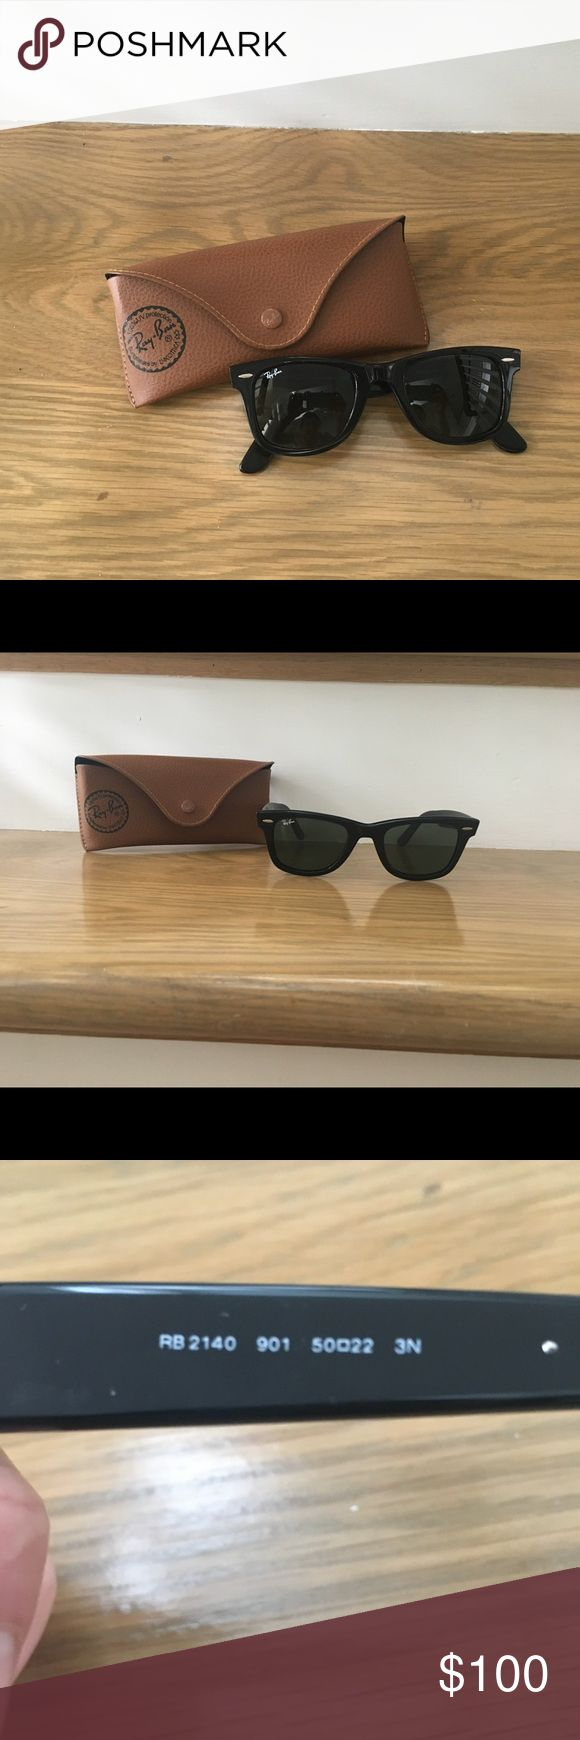 Mint condition Ray Ban Wayfarer Ray Ban Wayfarer sunglasses in black in perfect condition. Come in original case. Worn only a handful of times. Model RB2140 Ray-Ban Accessories Sunglasses